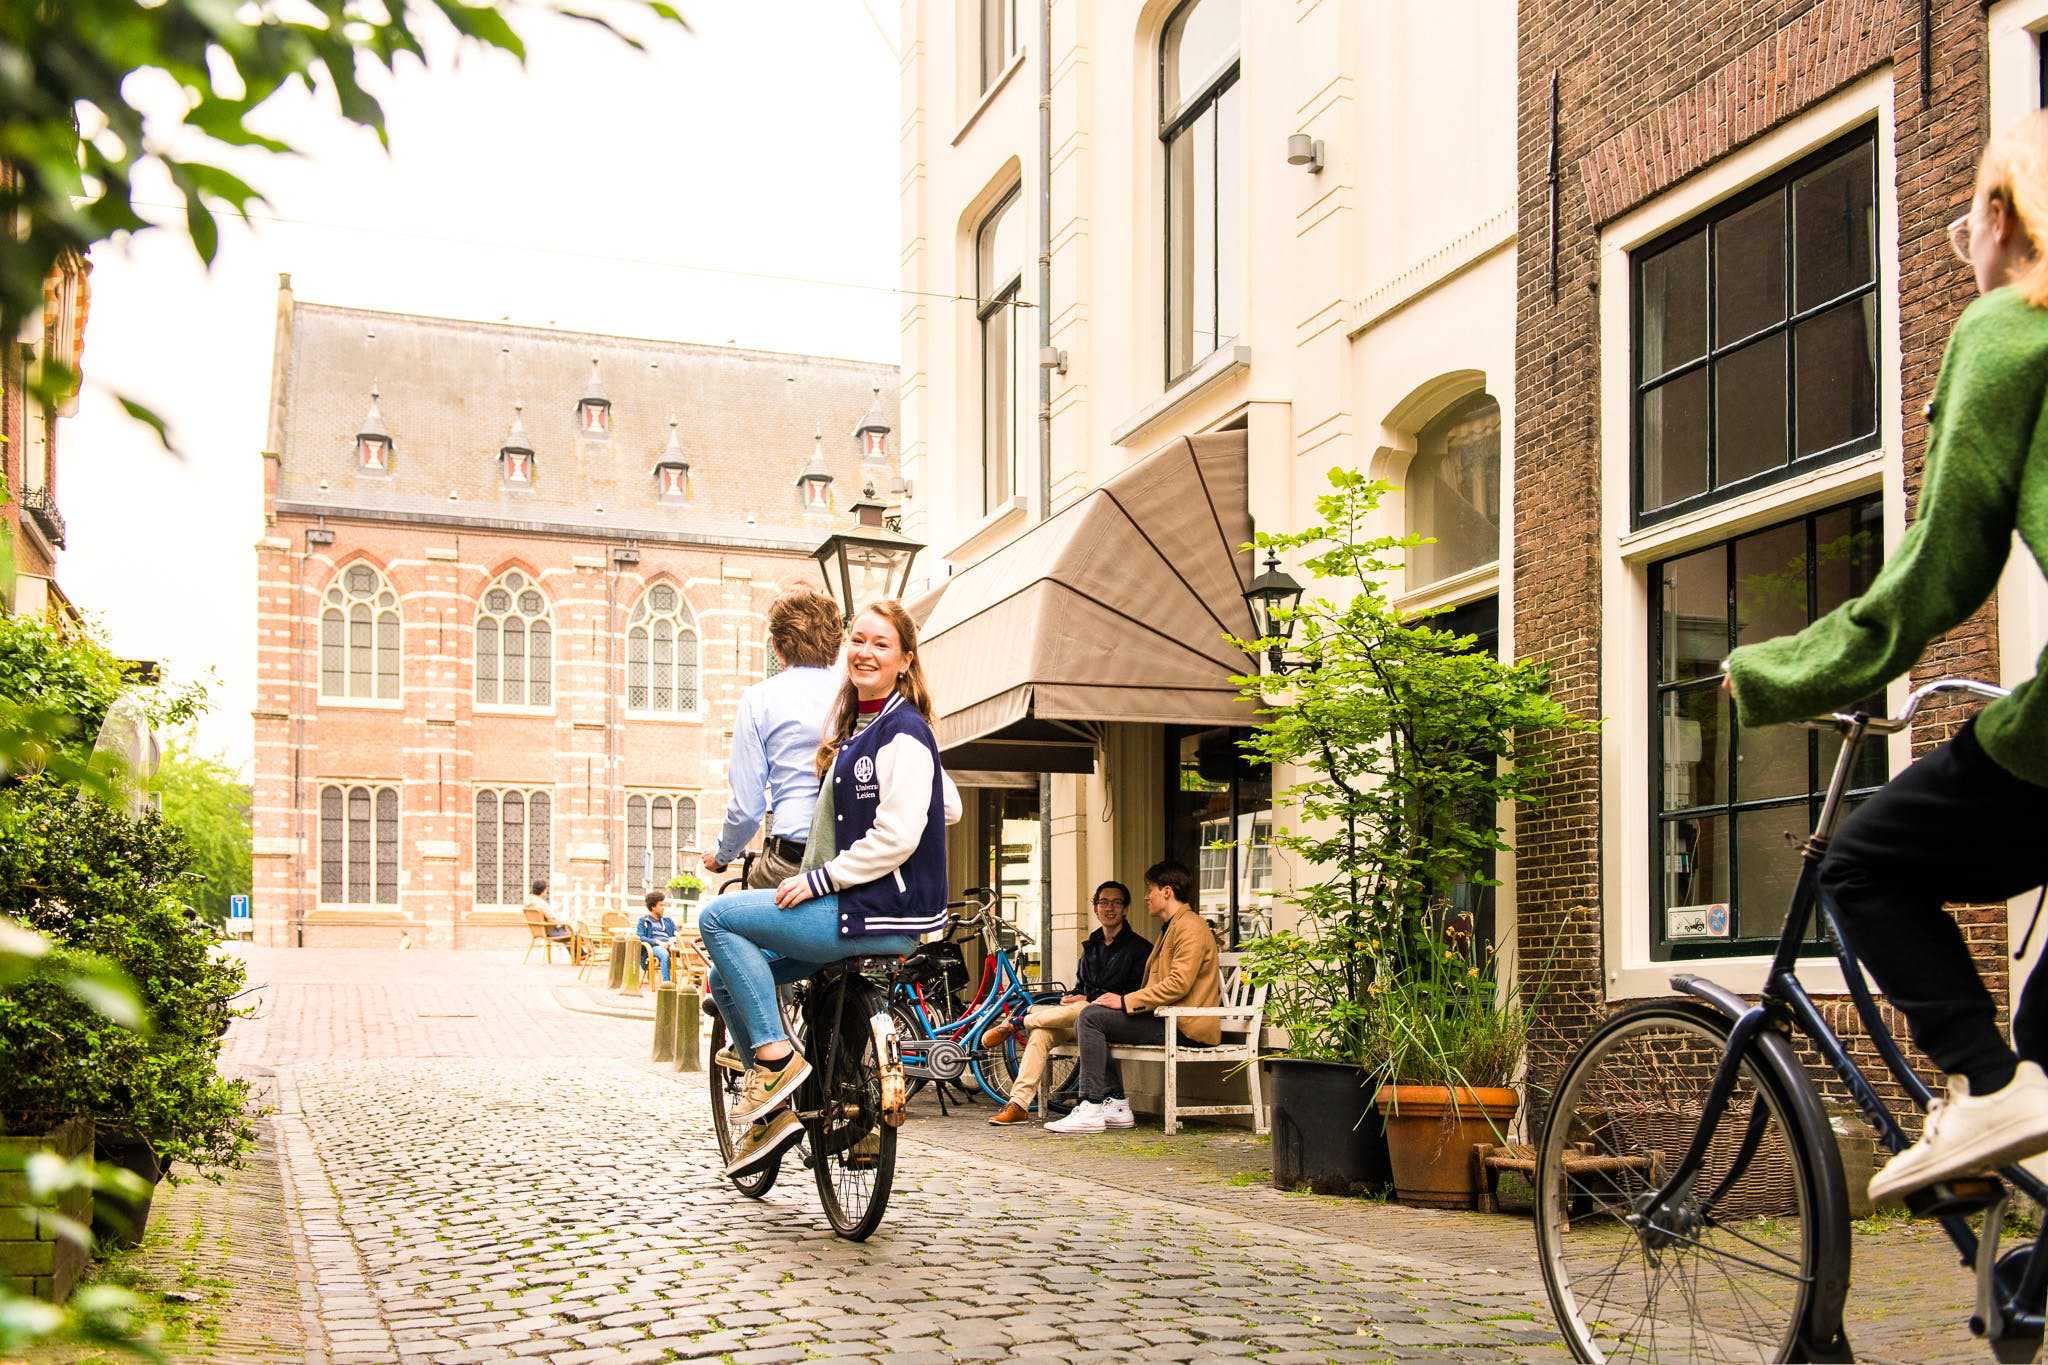 Discover the world at Leiden University